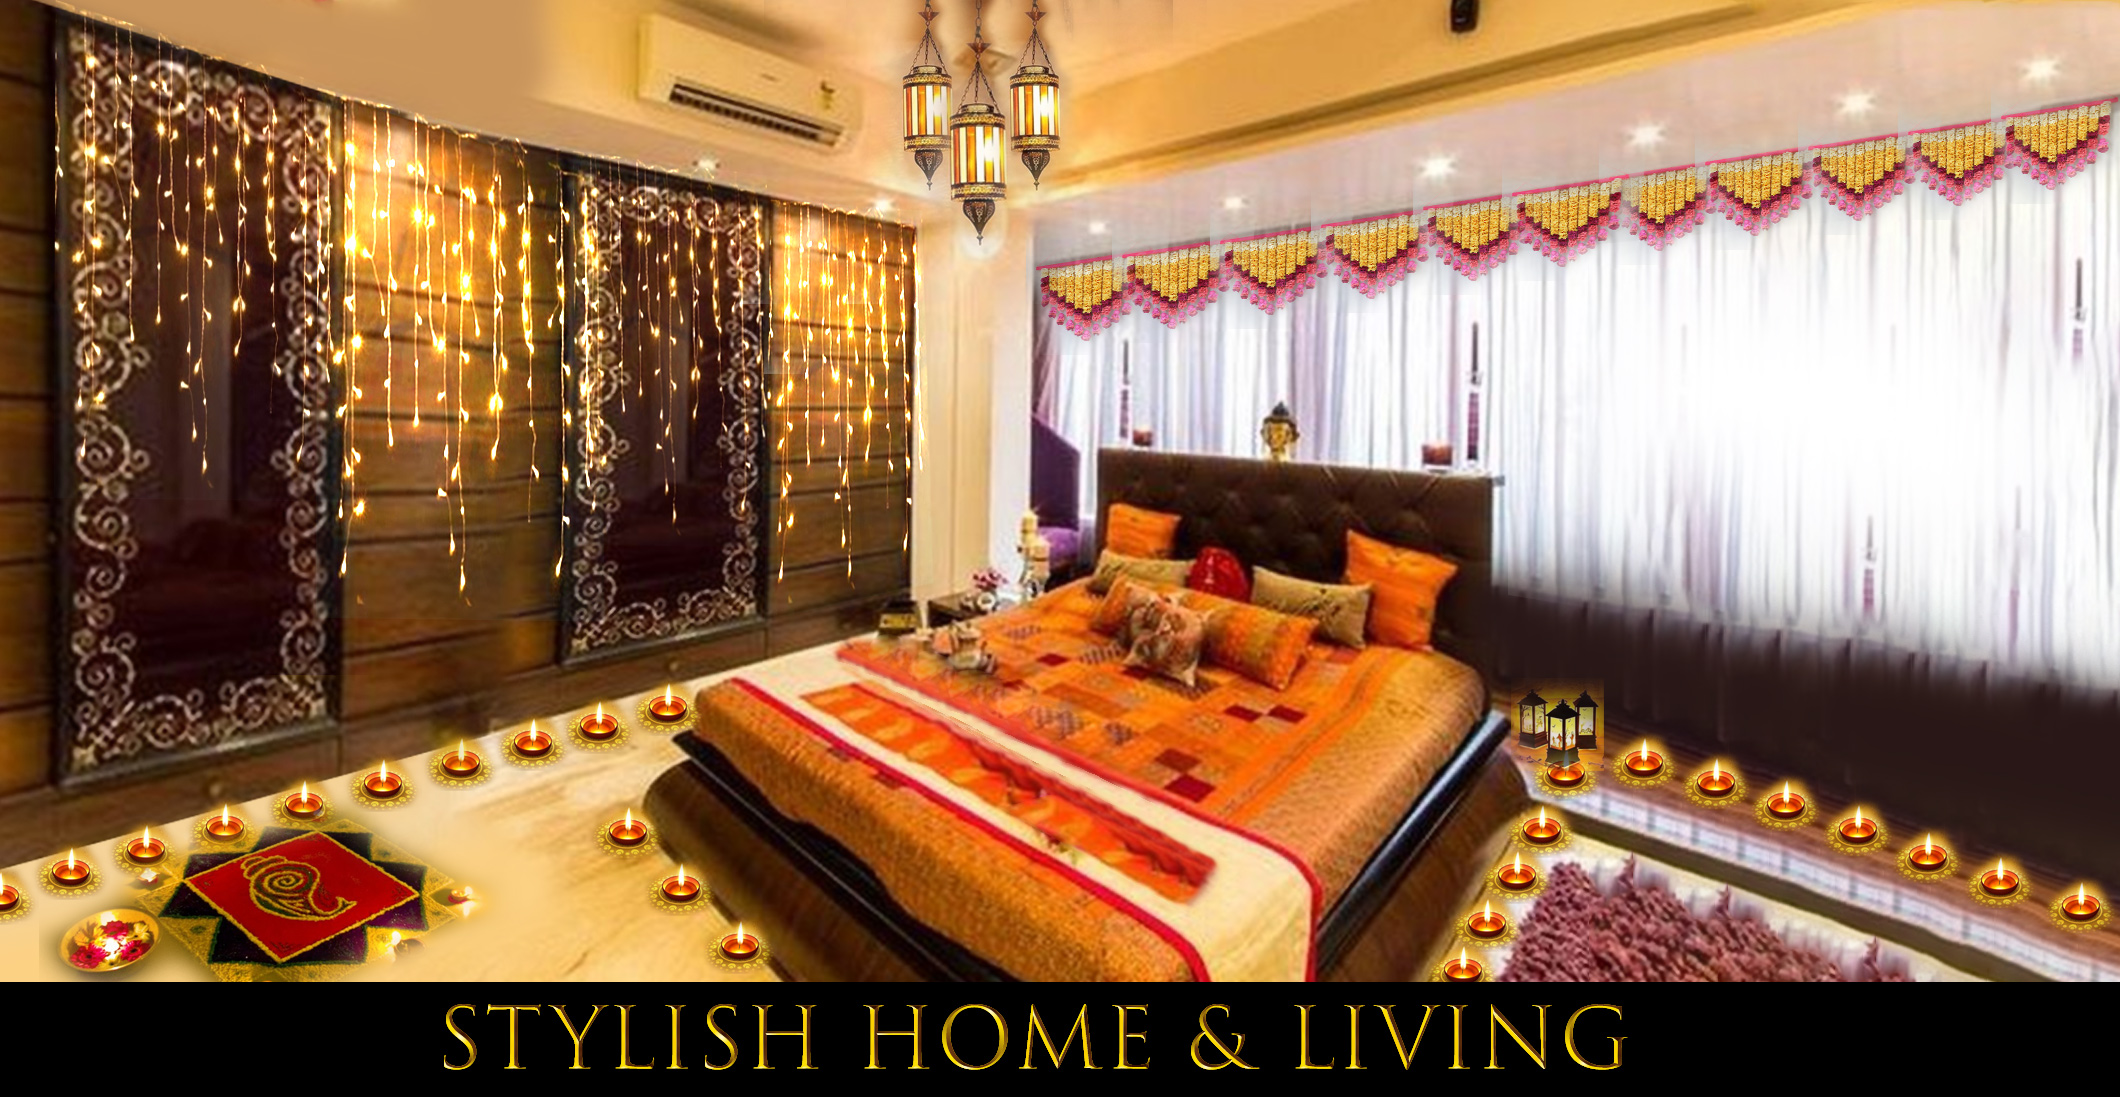 Diwali Room Décor: Bedsheets and Curtains